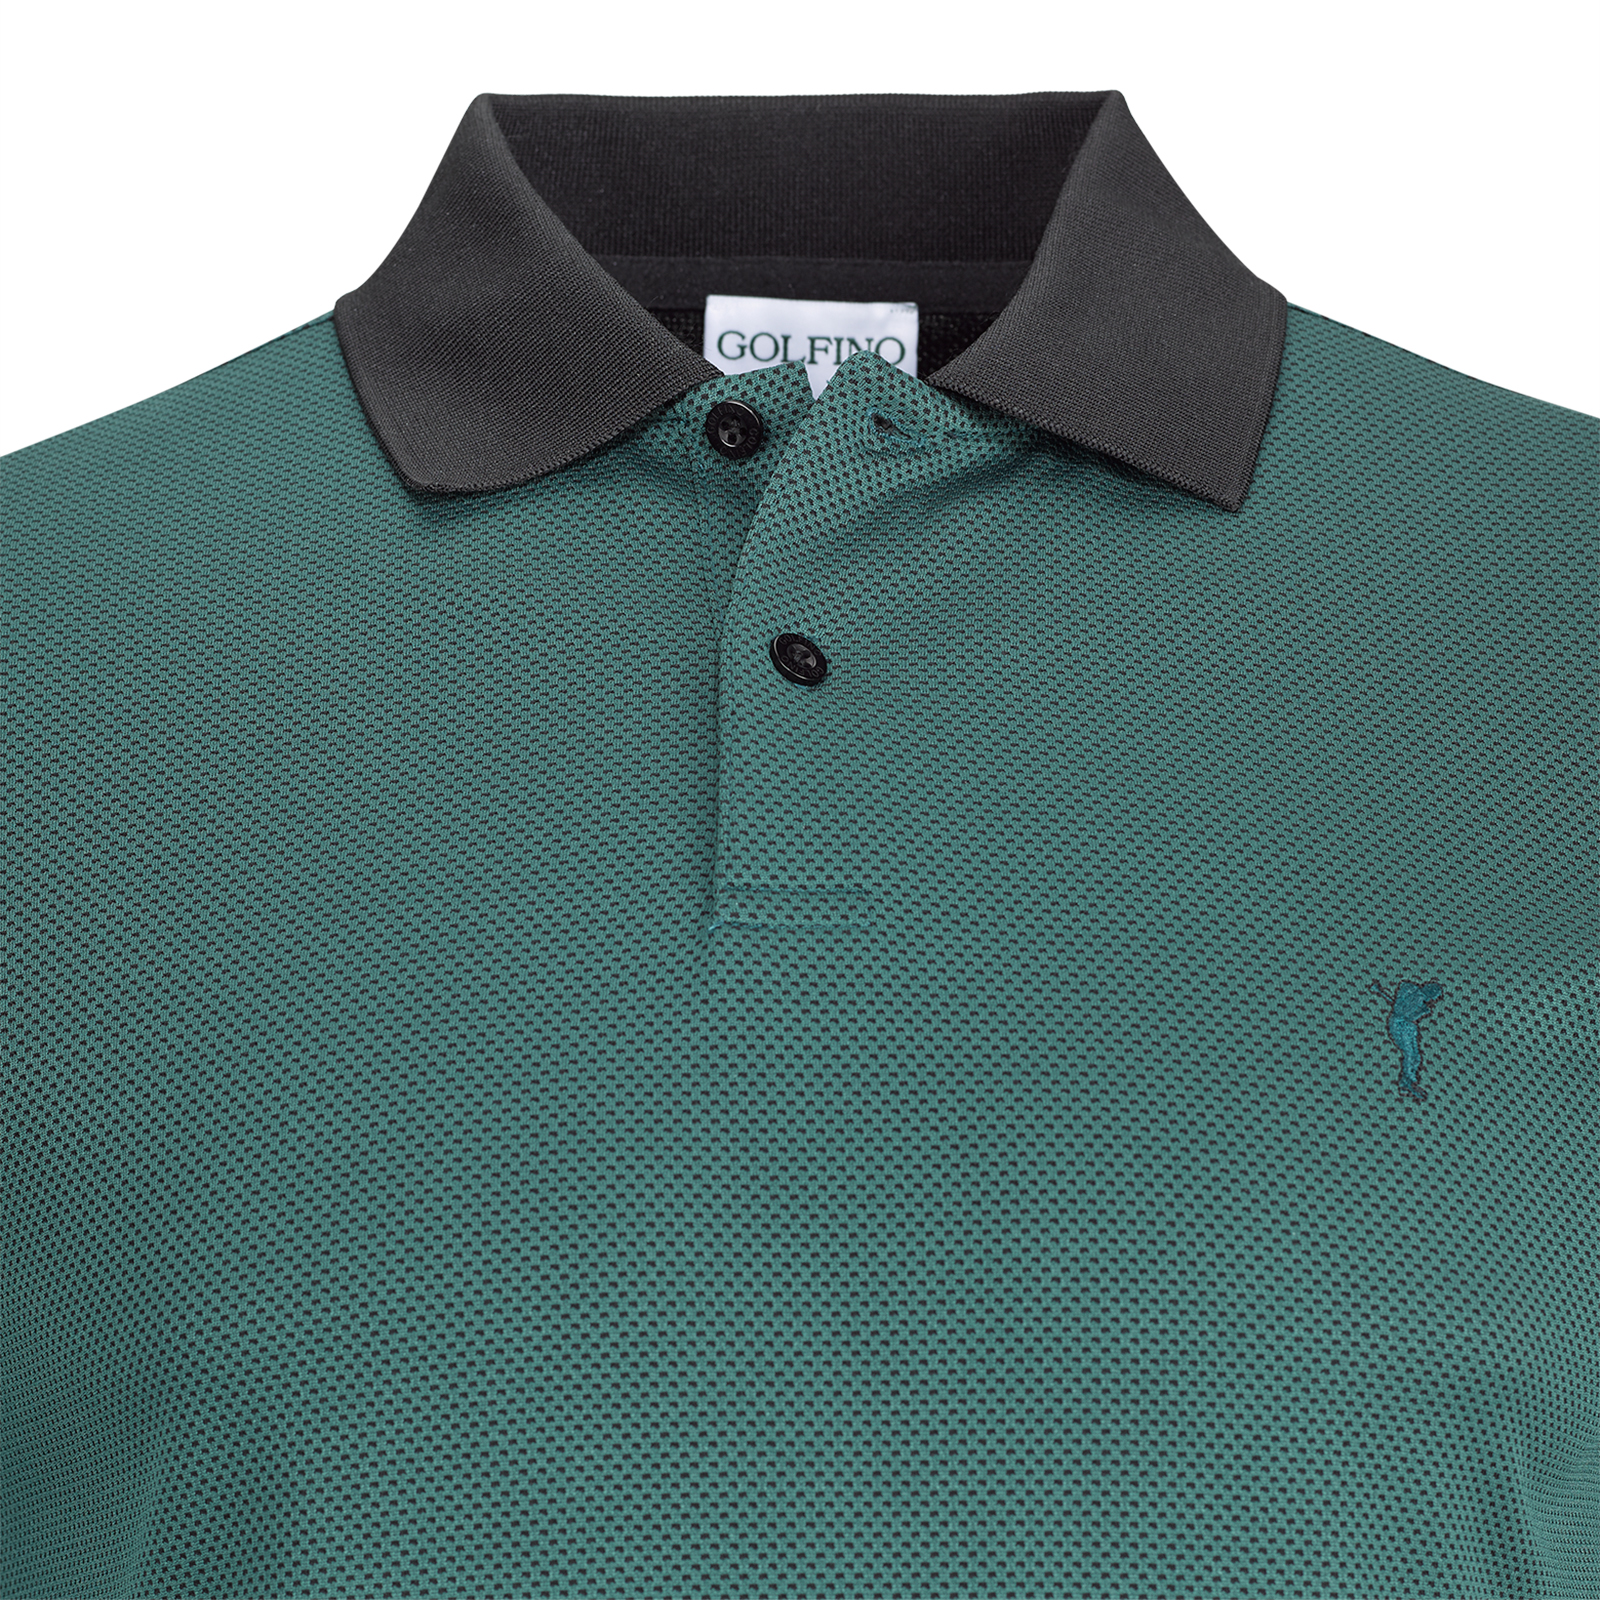 Techno Bubble Jacquard Herren Kurzarm Funktions-Golfpolo Quick Dry